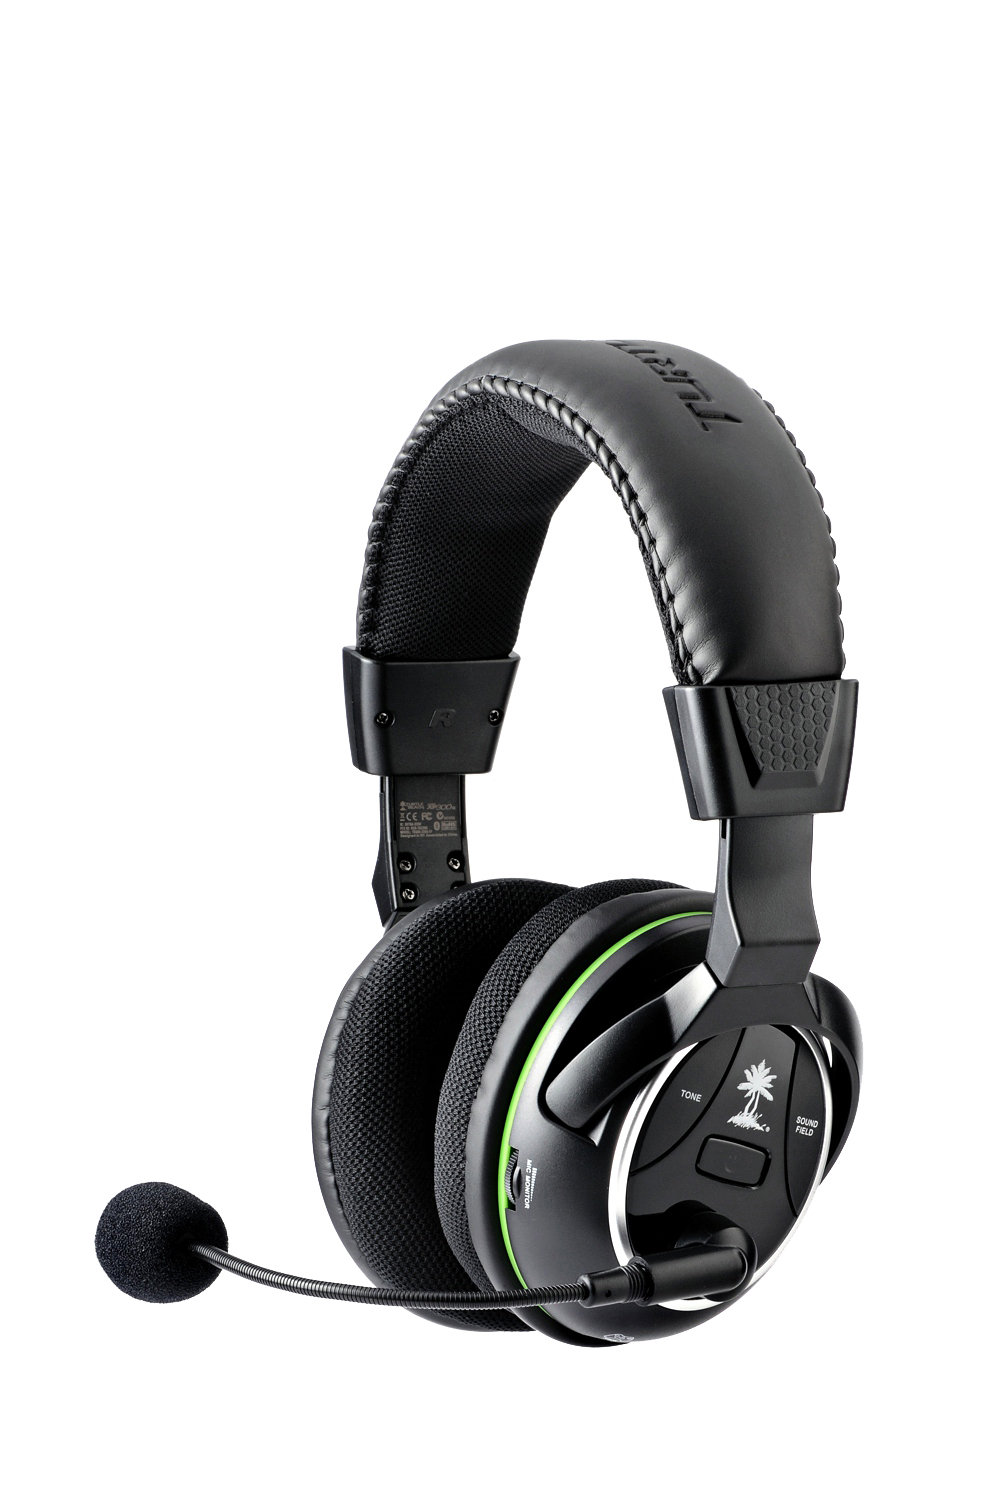 ps3 turtle beach ear force xp300 wireless gaming headset. Black Bedroom Furniture Sets. Home Design Ideas